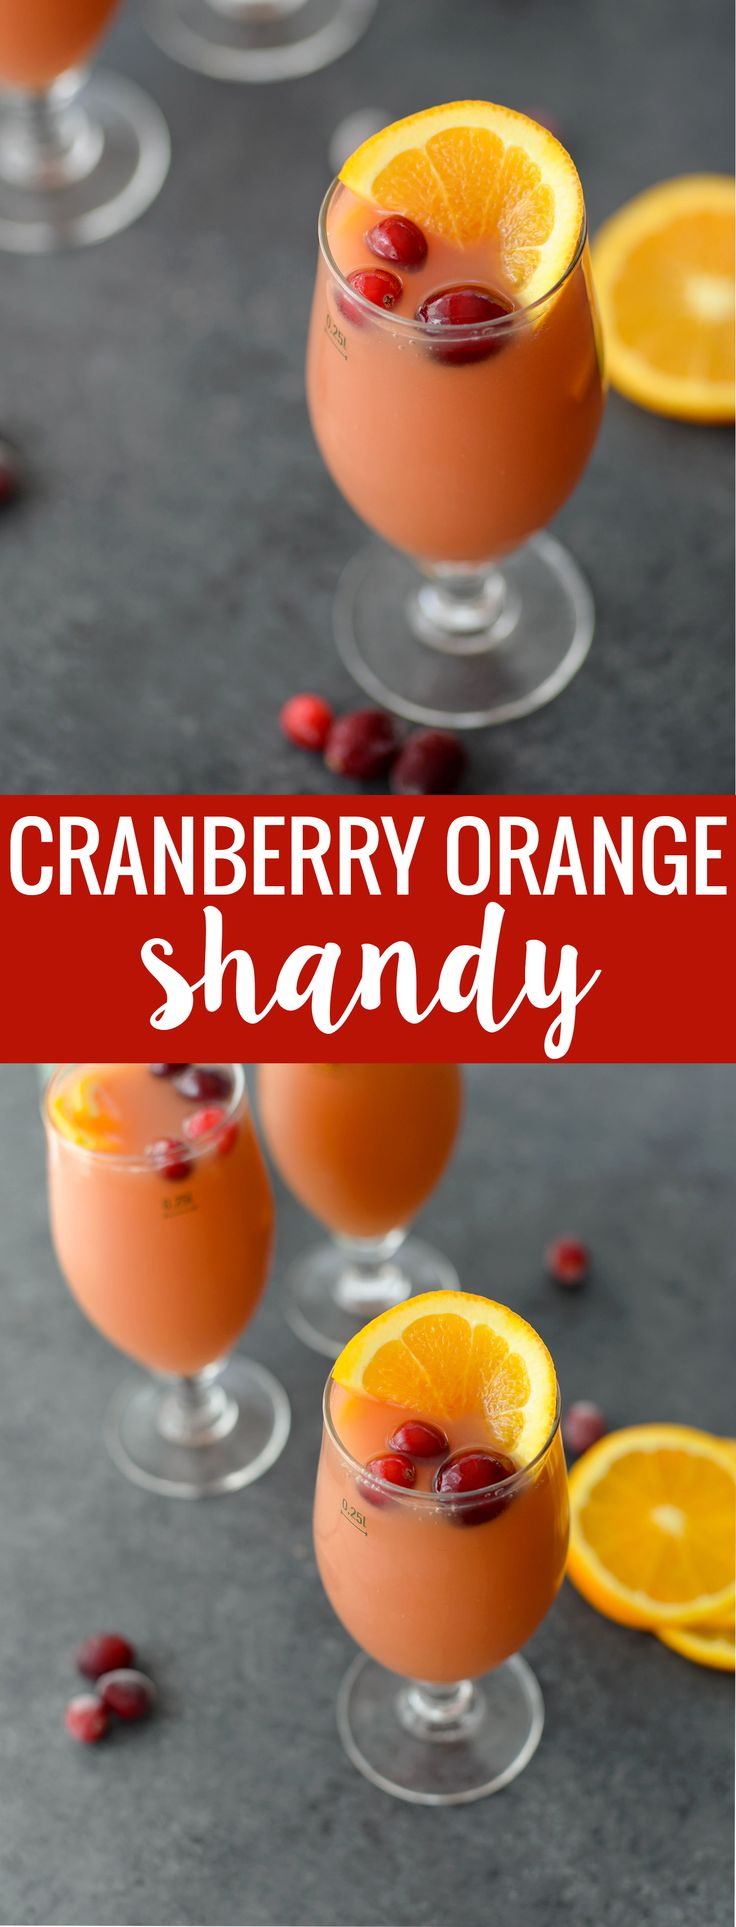 Cranberry Orange Beer Shandy! You've gotta try this three ingredient cocktail, perfect for holiday and christmas entertaining. Refreshing, delicious and can easily be made into pitchers for parties. | www.delishknowledge.com